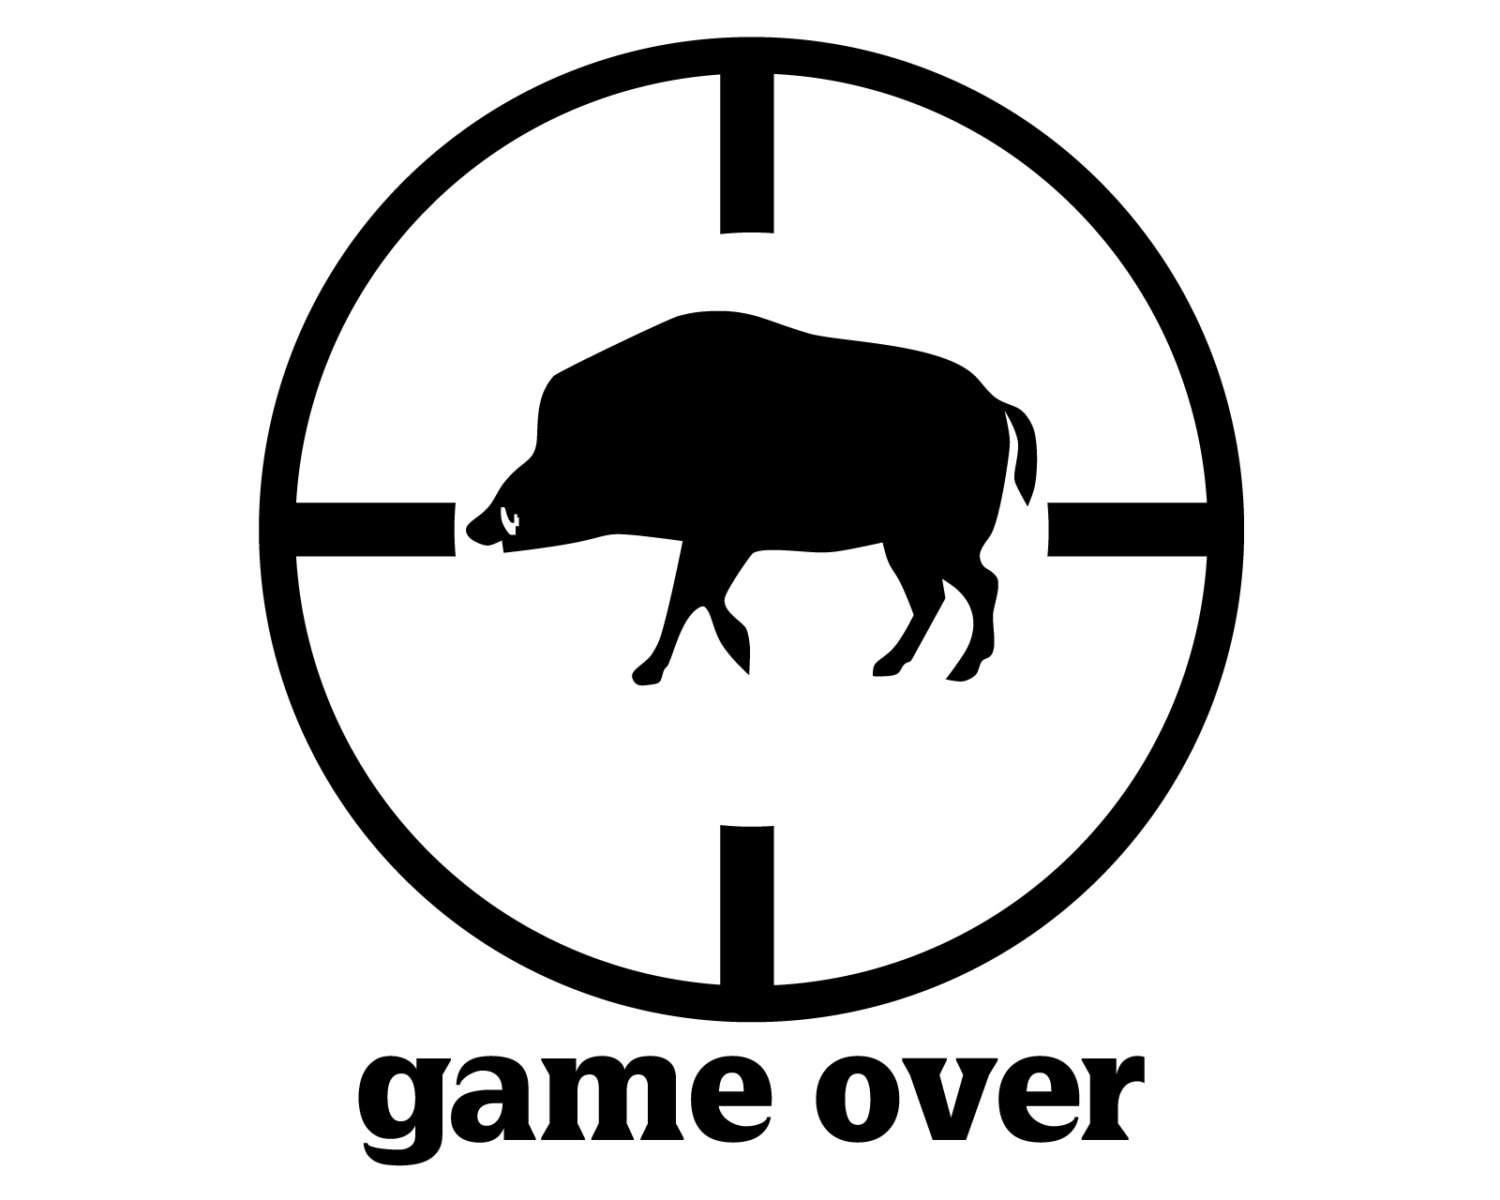 Wild Boar Hunting Clipart 20 Free Cliparts